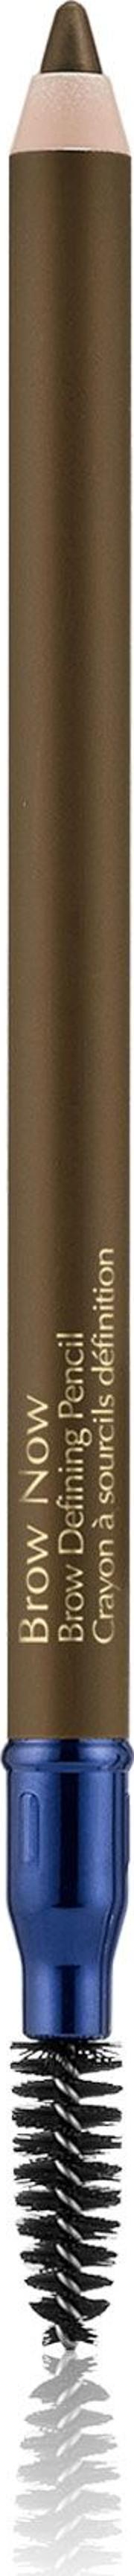 Estee Lauder , Brow Now Brow Defining Pencil, Dark Brunette